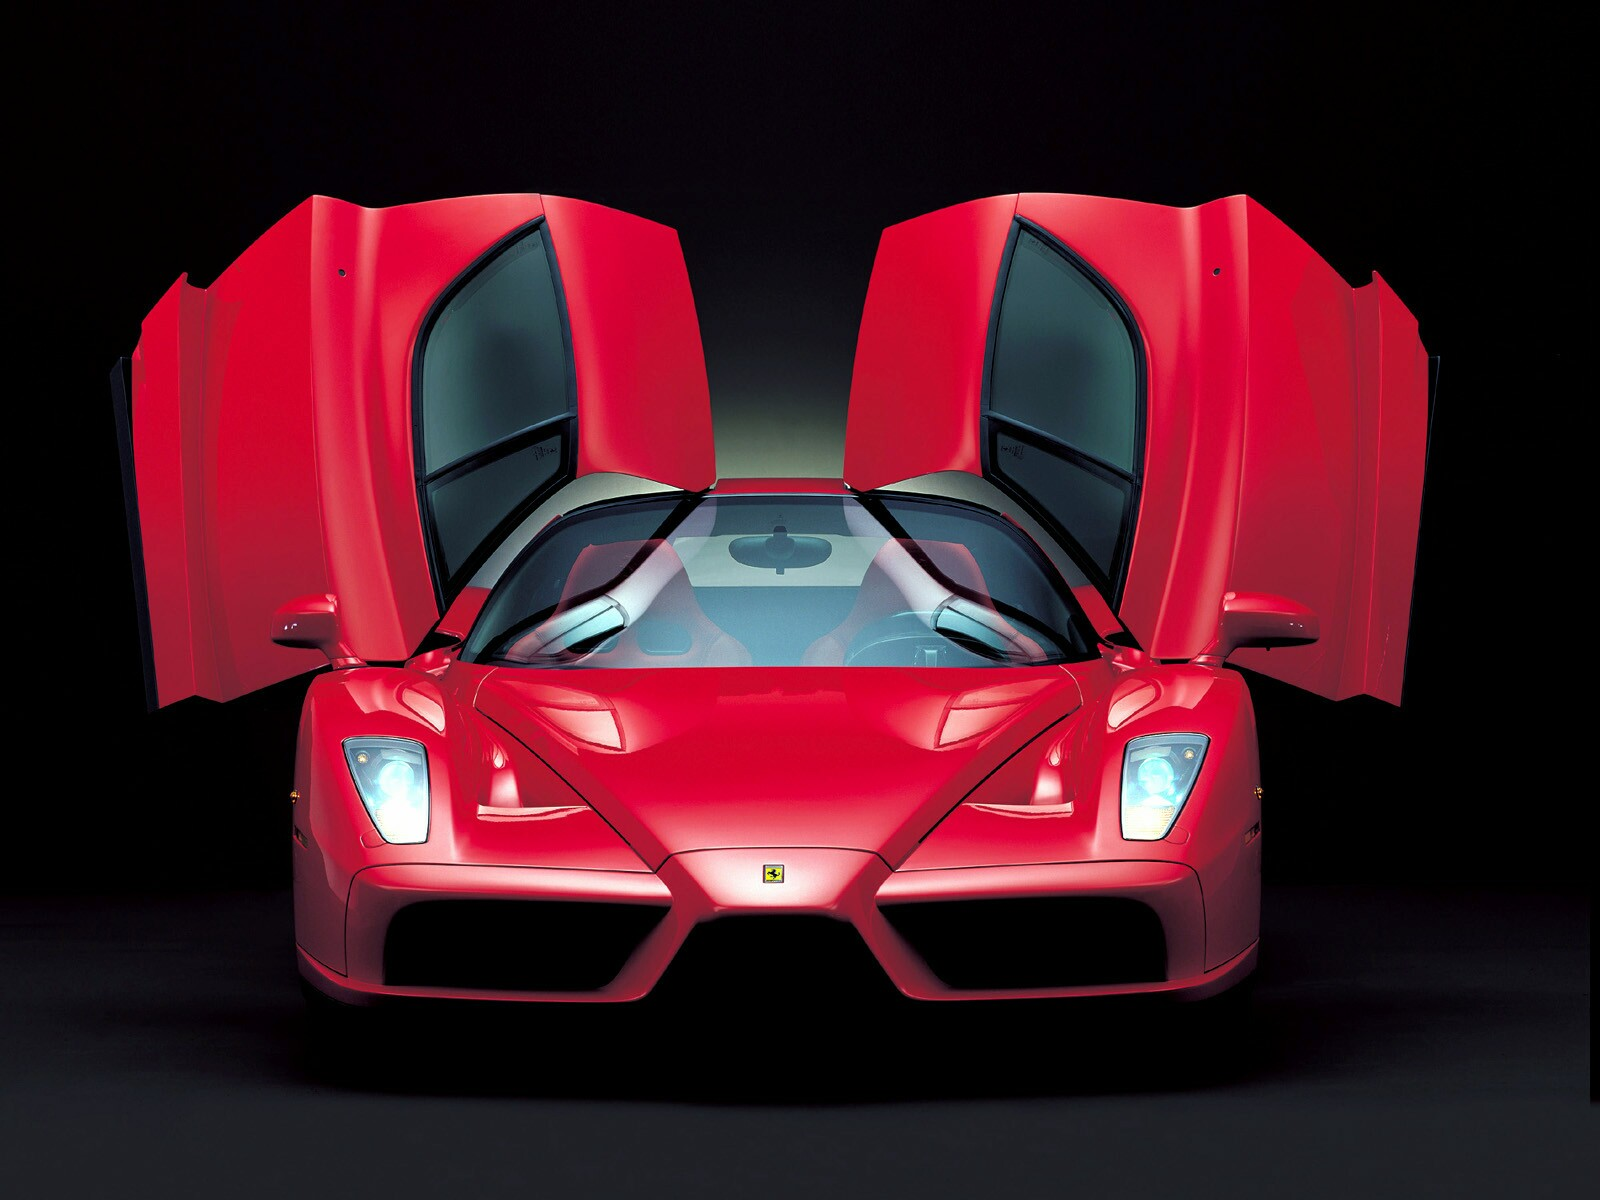 Ferrari Enzo 004 World Cars Wallpapers Background